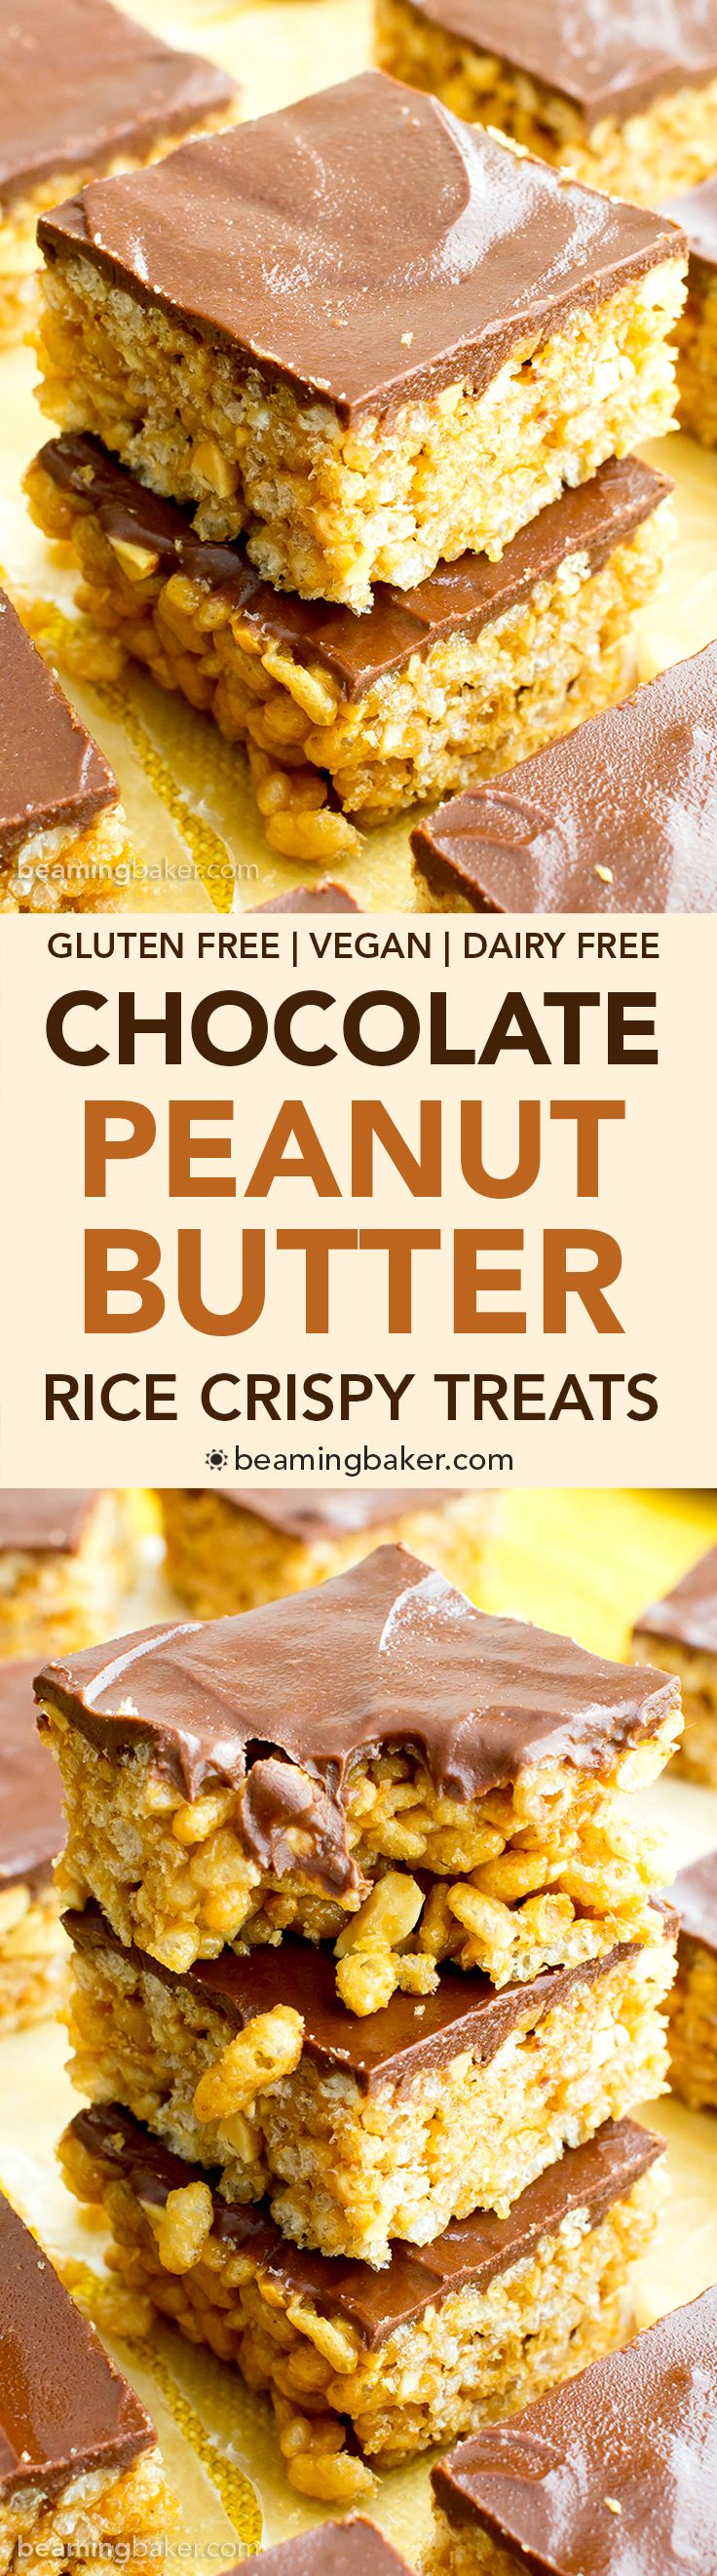 Chocolate Peanut Butter Rice Crispy Treats (V, GF, DF): an easy 5 ingredient recipe for chocolate-topped PB rice crispy treats that taste like peanut butter cups. #Vegan #GlutenFree #DairyFree | BeamingBaker.com